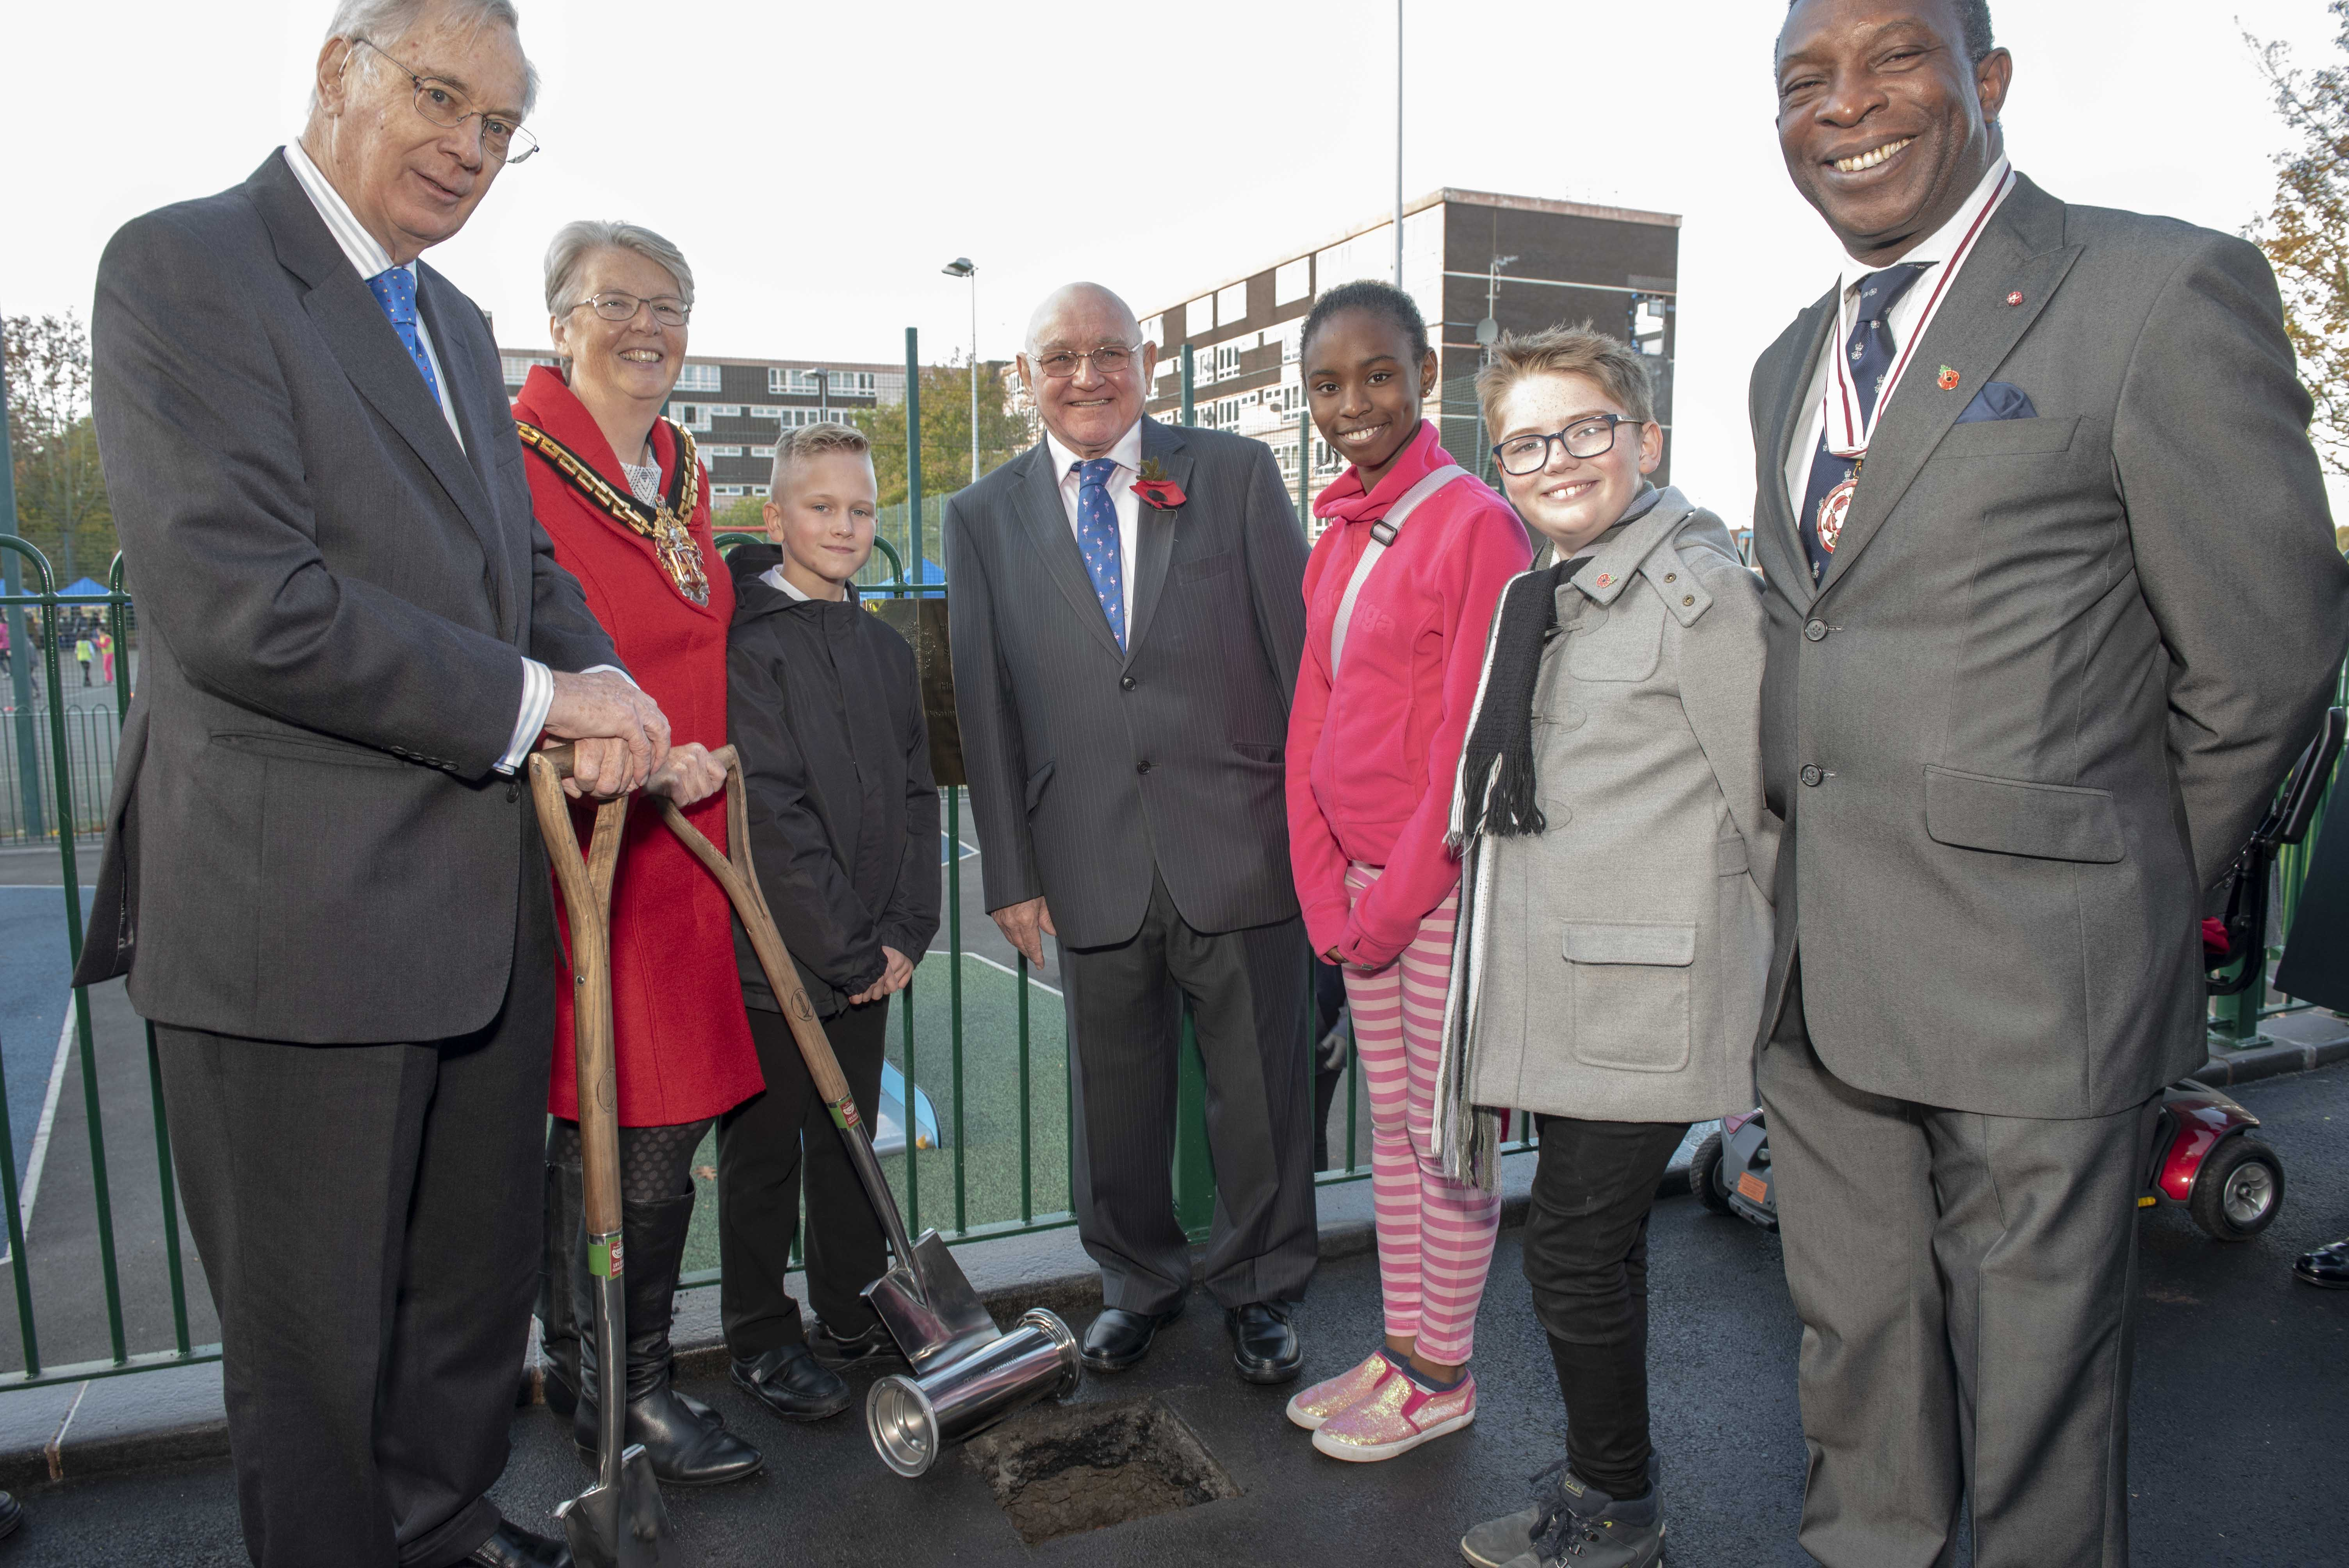 Heath Town celebrates 50 years with Royal visit